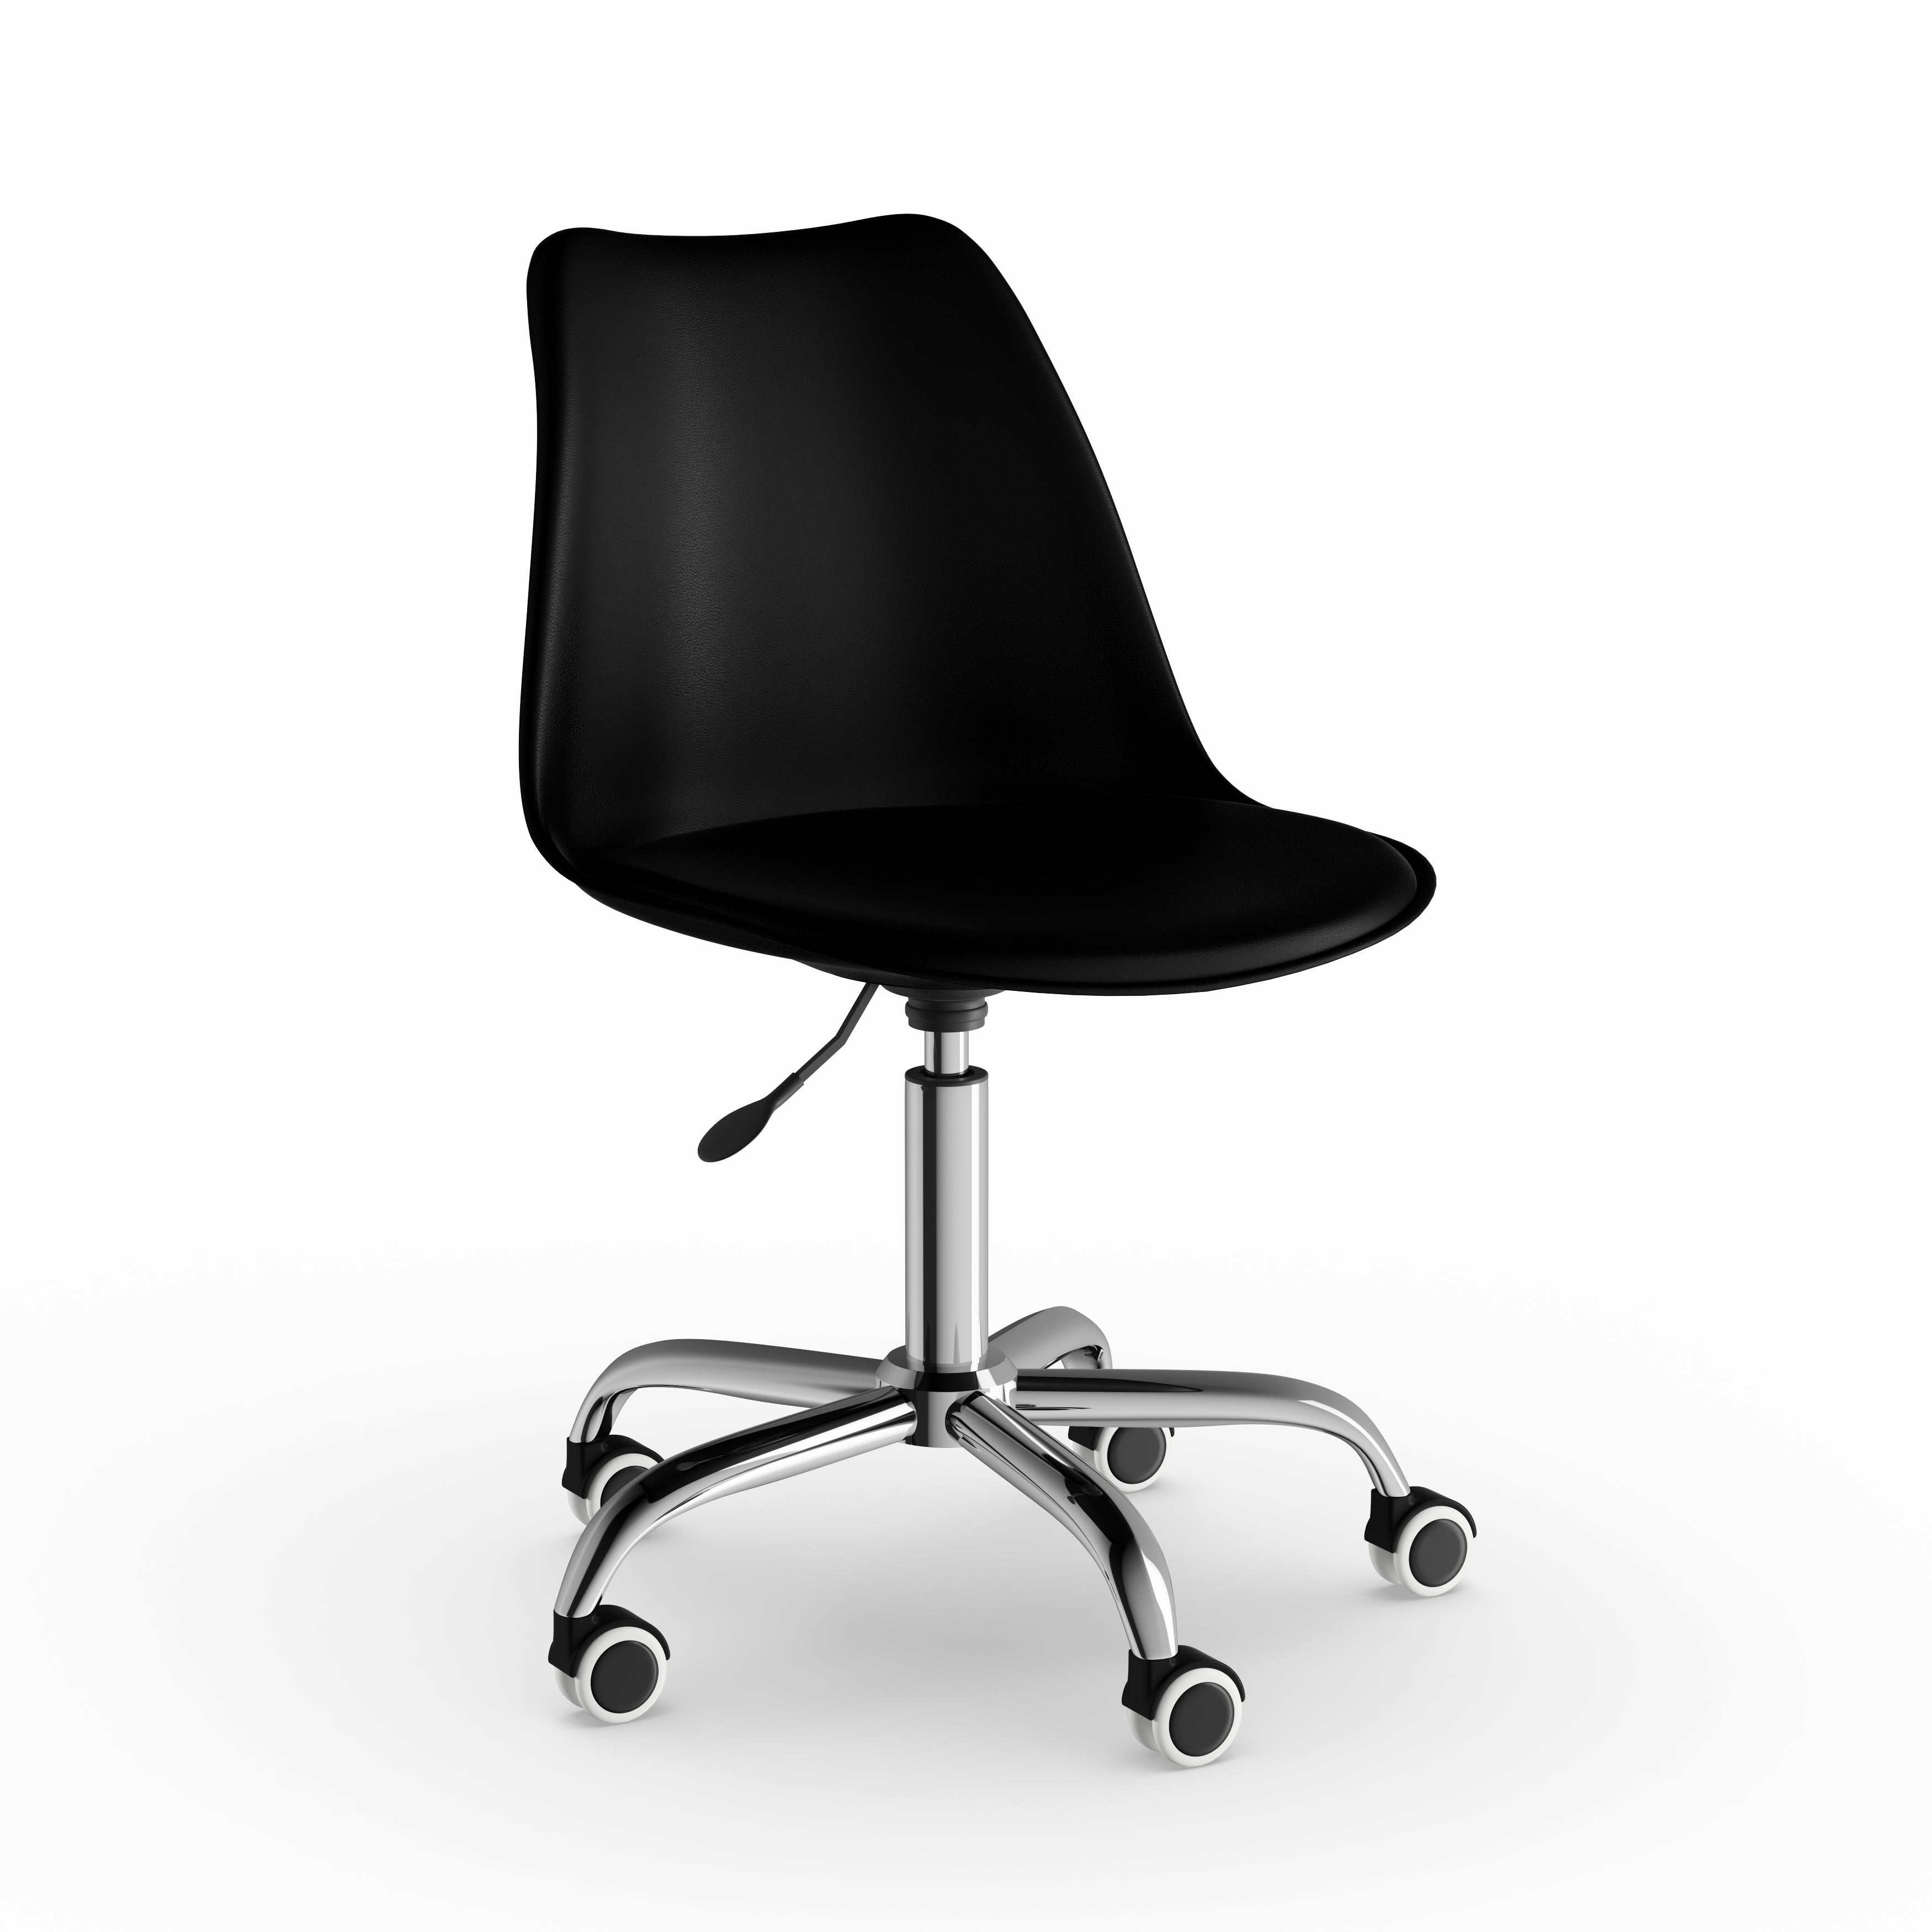 Chair With Wheels >> Carson Carrington Hedemora Leather Office Chair With Wheels